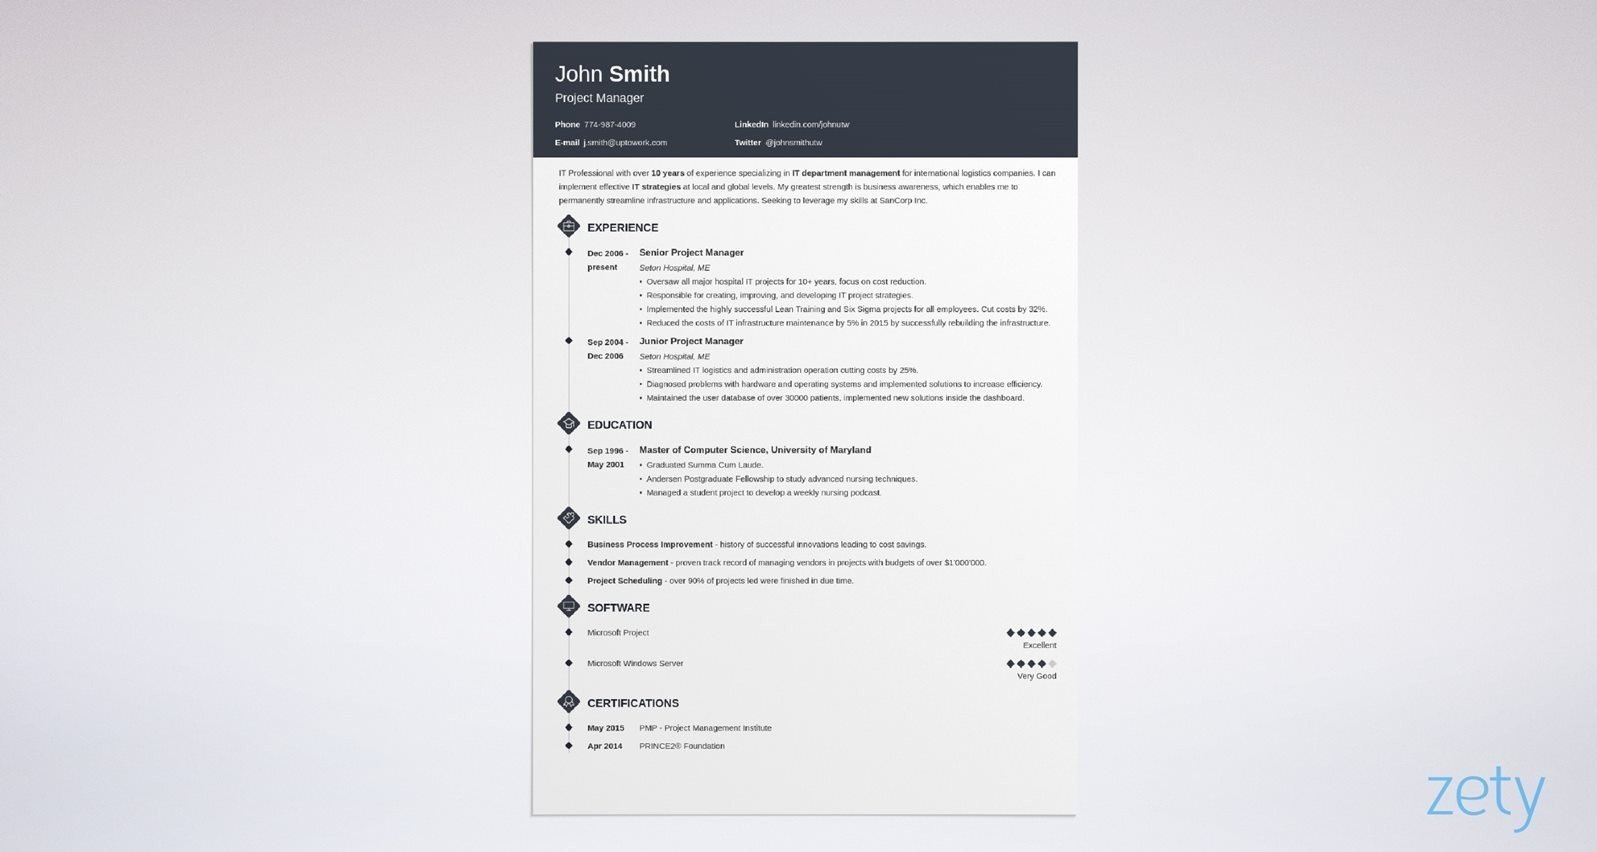 best resume templates for top picks to executive template free college student without Resume Executive Resume Template 2020 Free